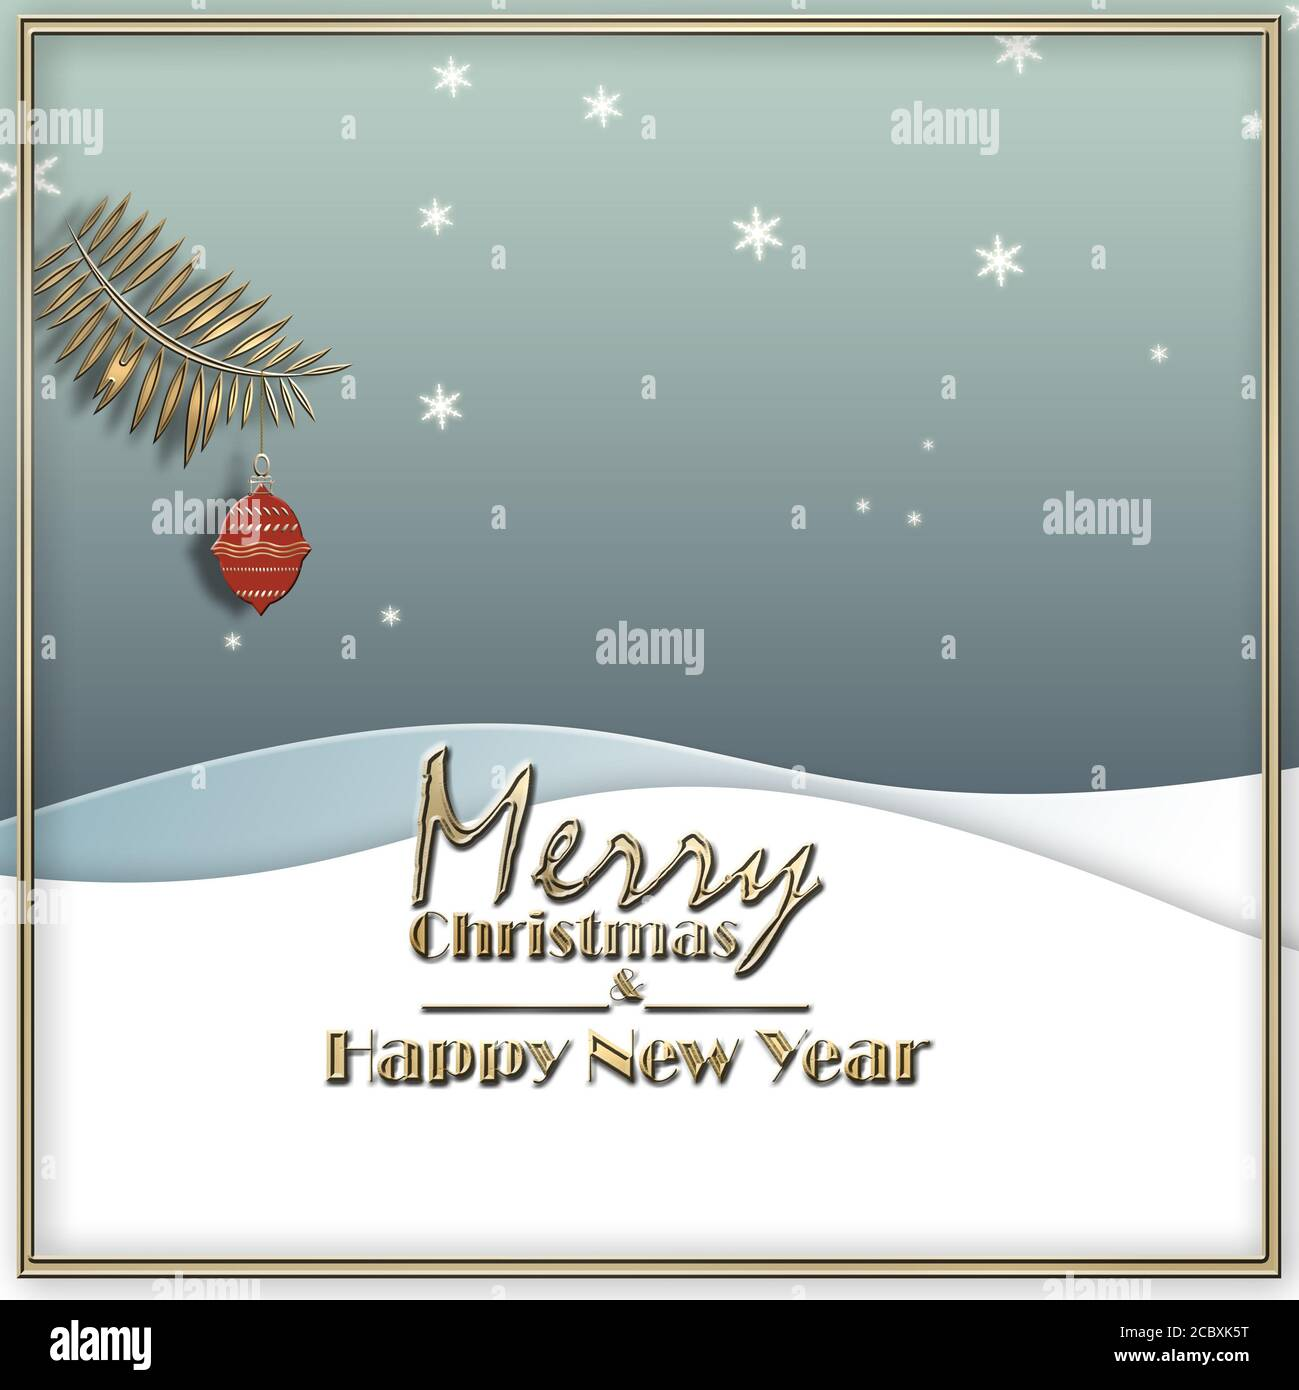 Hanging Banner Images Merry Christmas & Happy New Year 2021 Pastel Blue Winter Landscape Red Hanging Ball Text Merry Christmas And Happy New Year Minimalist Background For 2021 New Year Christmas Flyer Poster Sign Banner Web Header 3d Illustration Stock Photo Alamy